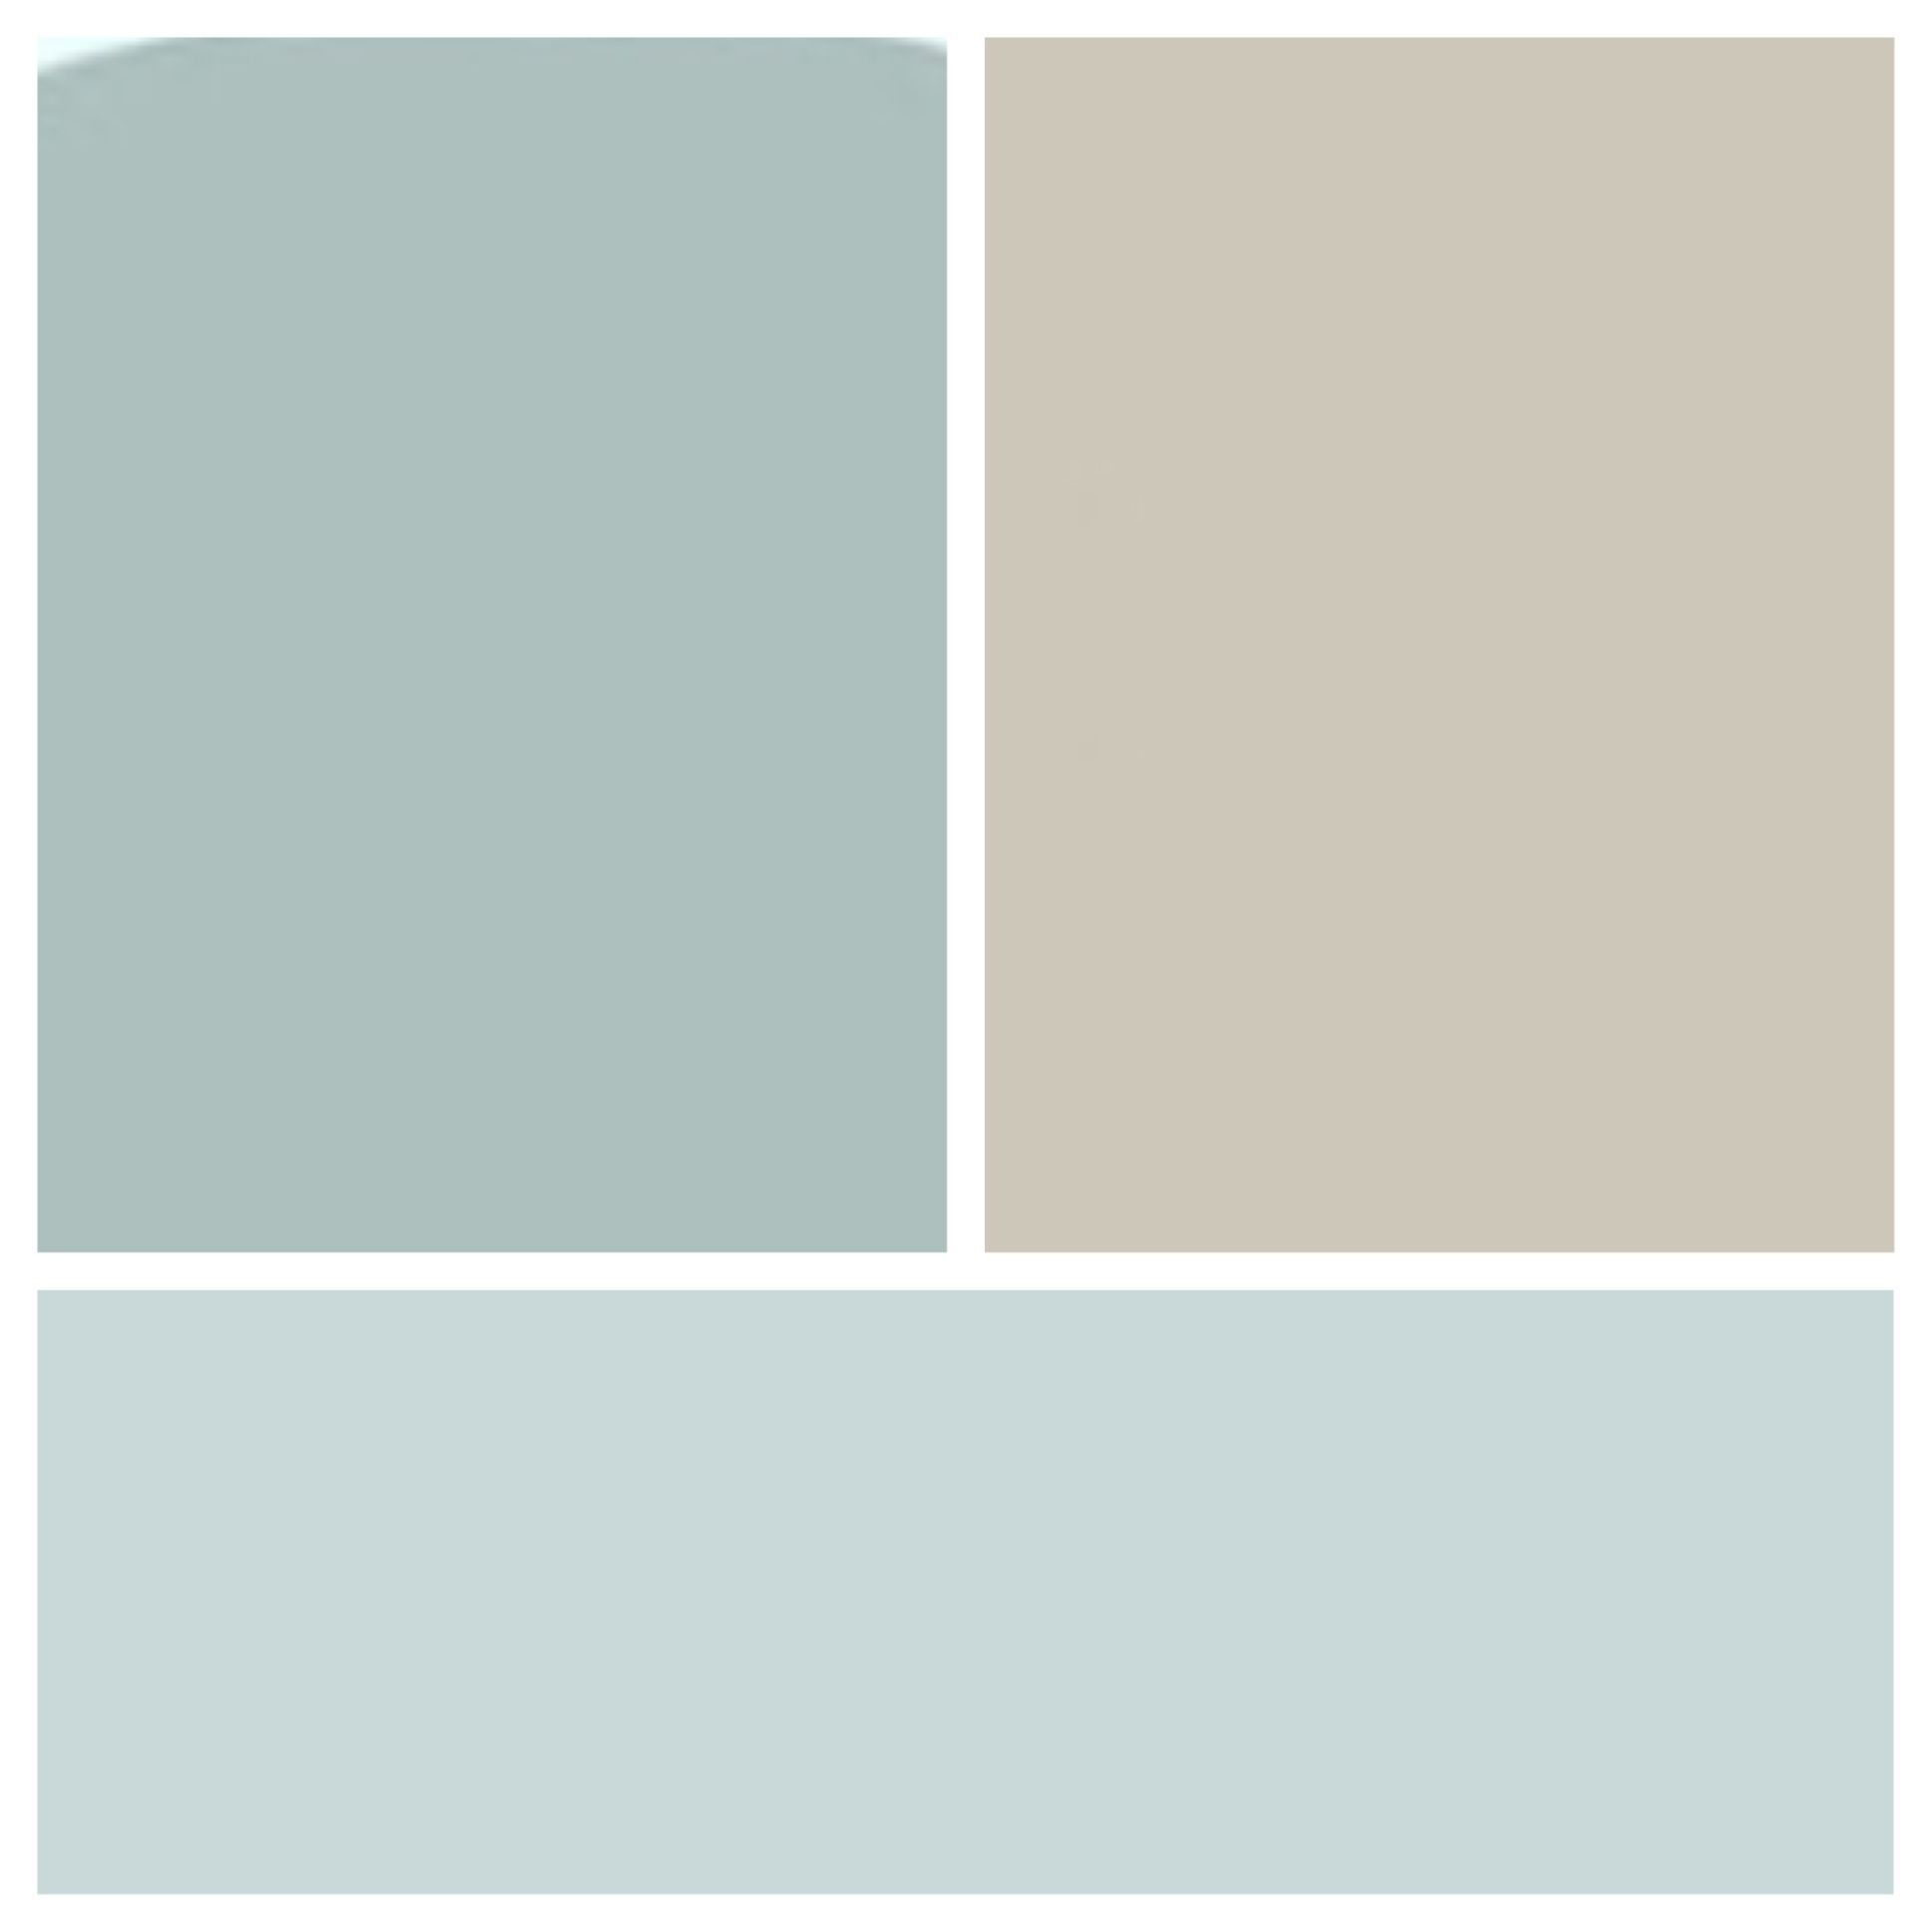 benjamin moore colors: wedgwood gray, revere pewter, and windy sky